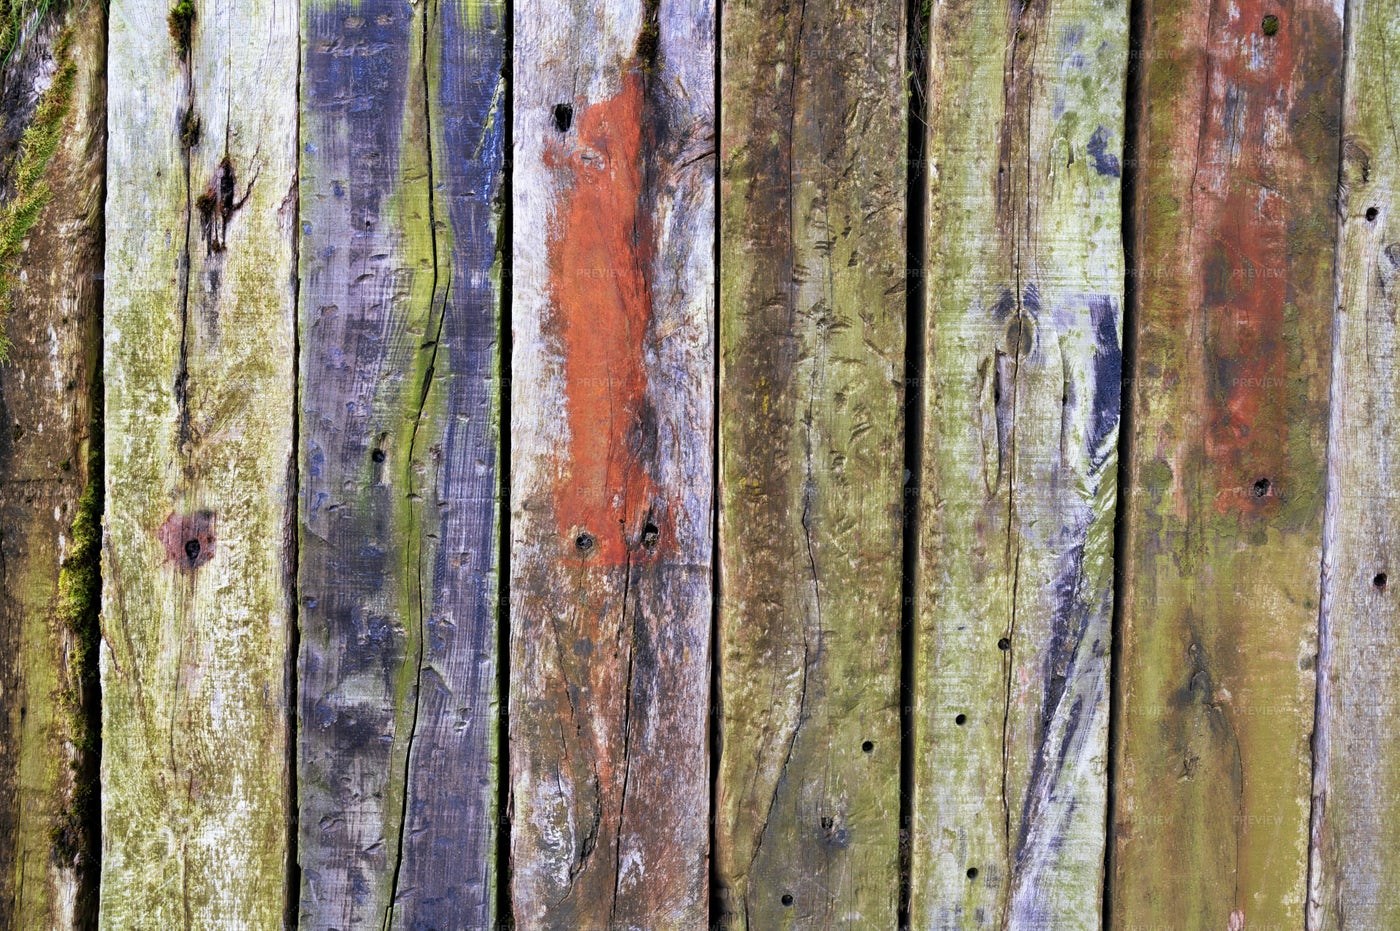 Colorful Wooden Fence Background: Stock Photos